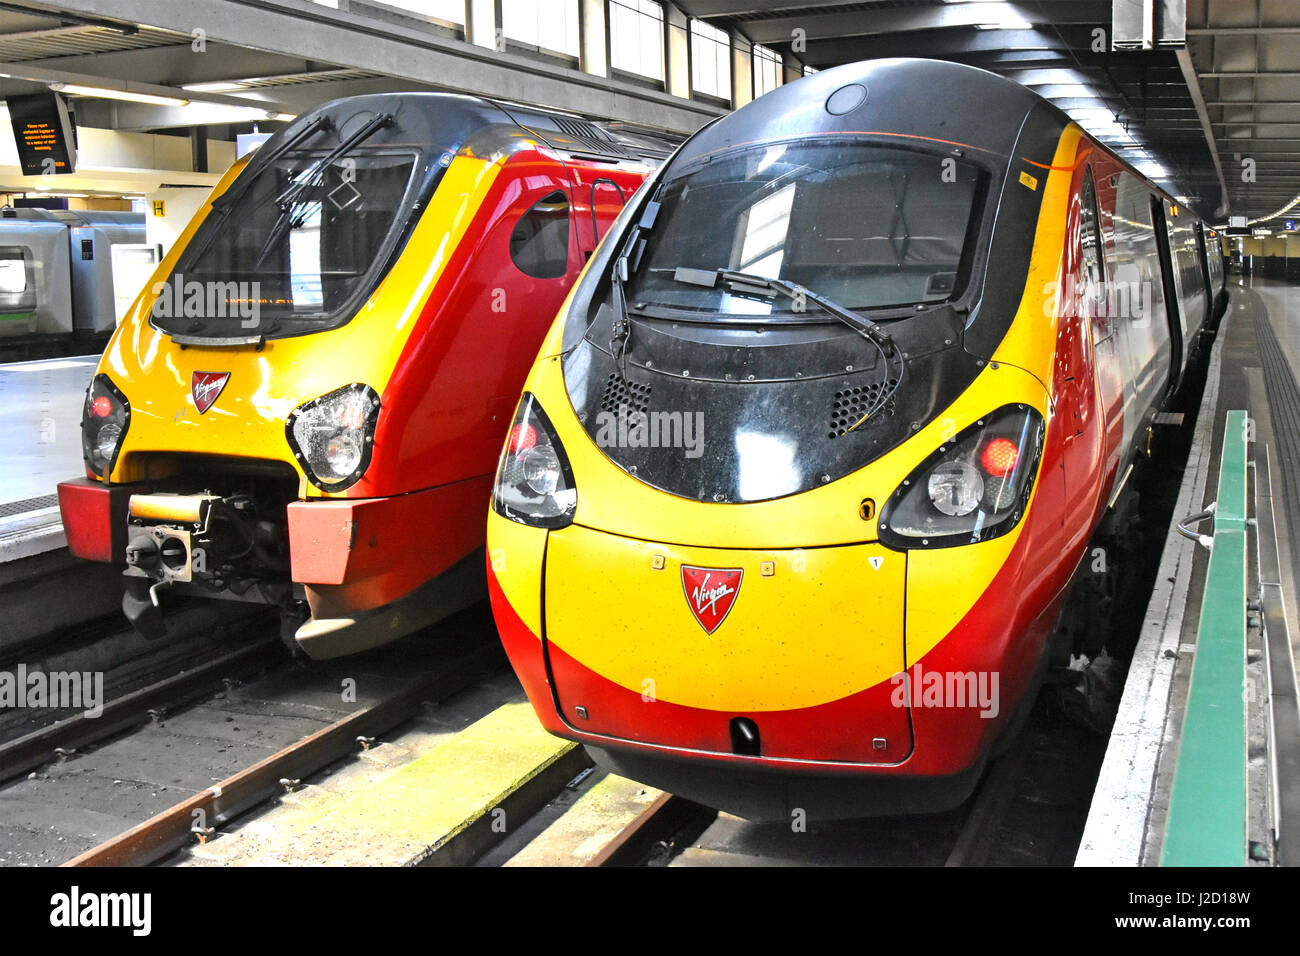 Two streamlined Virgin train units operated by Virgin Trains at Euston railway station platforms London England - Stock Image